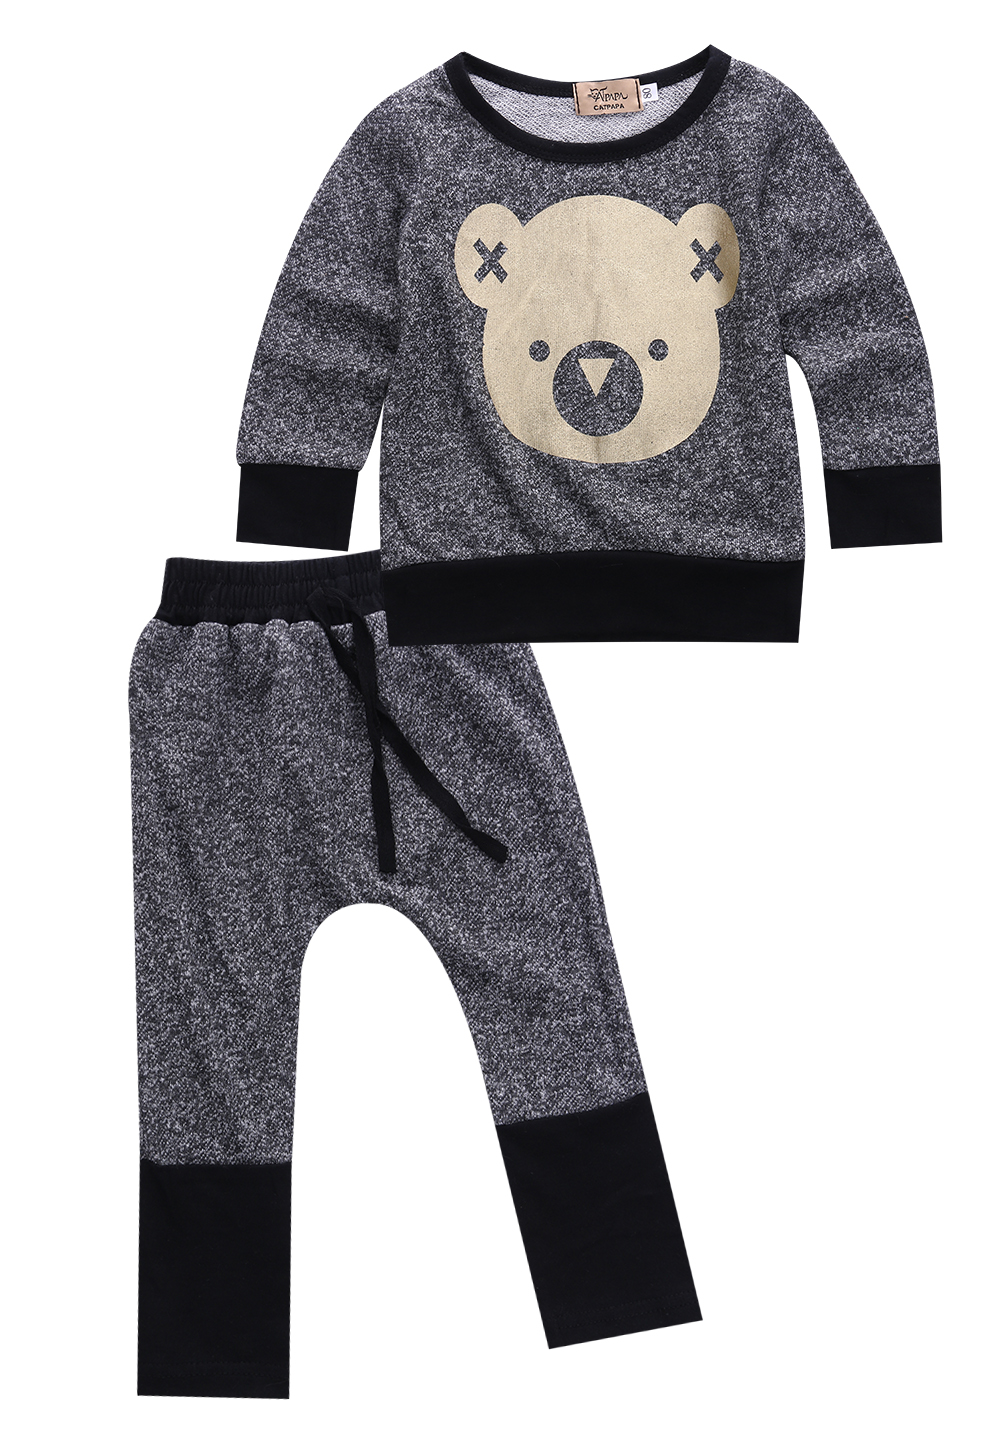 2pcs Toddler Infant Baby Kids Boy Girl Clothes Sets Cute Minions Cartoon Sweat Shirt + Pants Spring Summer Outfit 1 2 3 4 Years